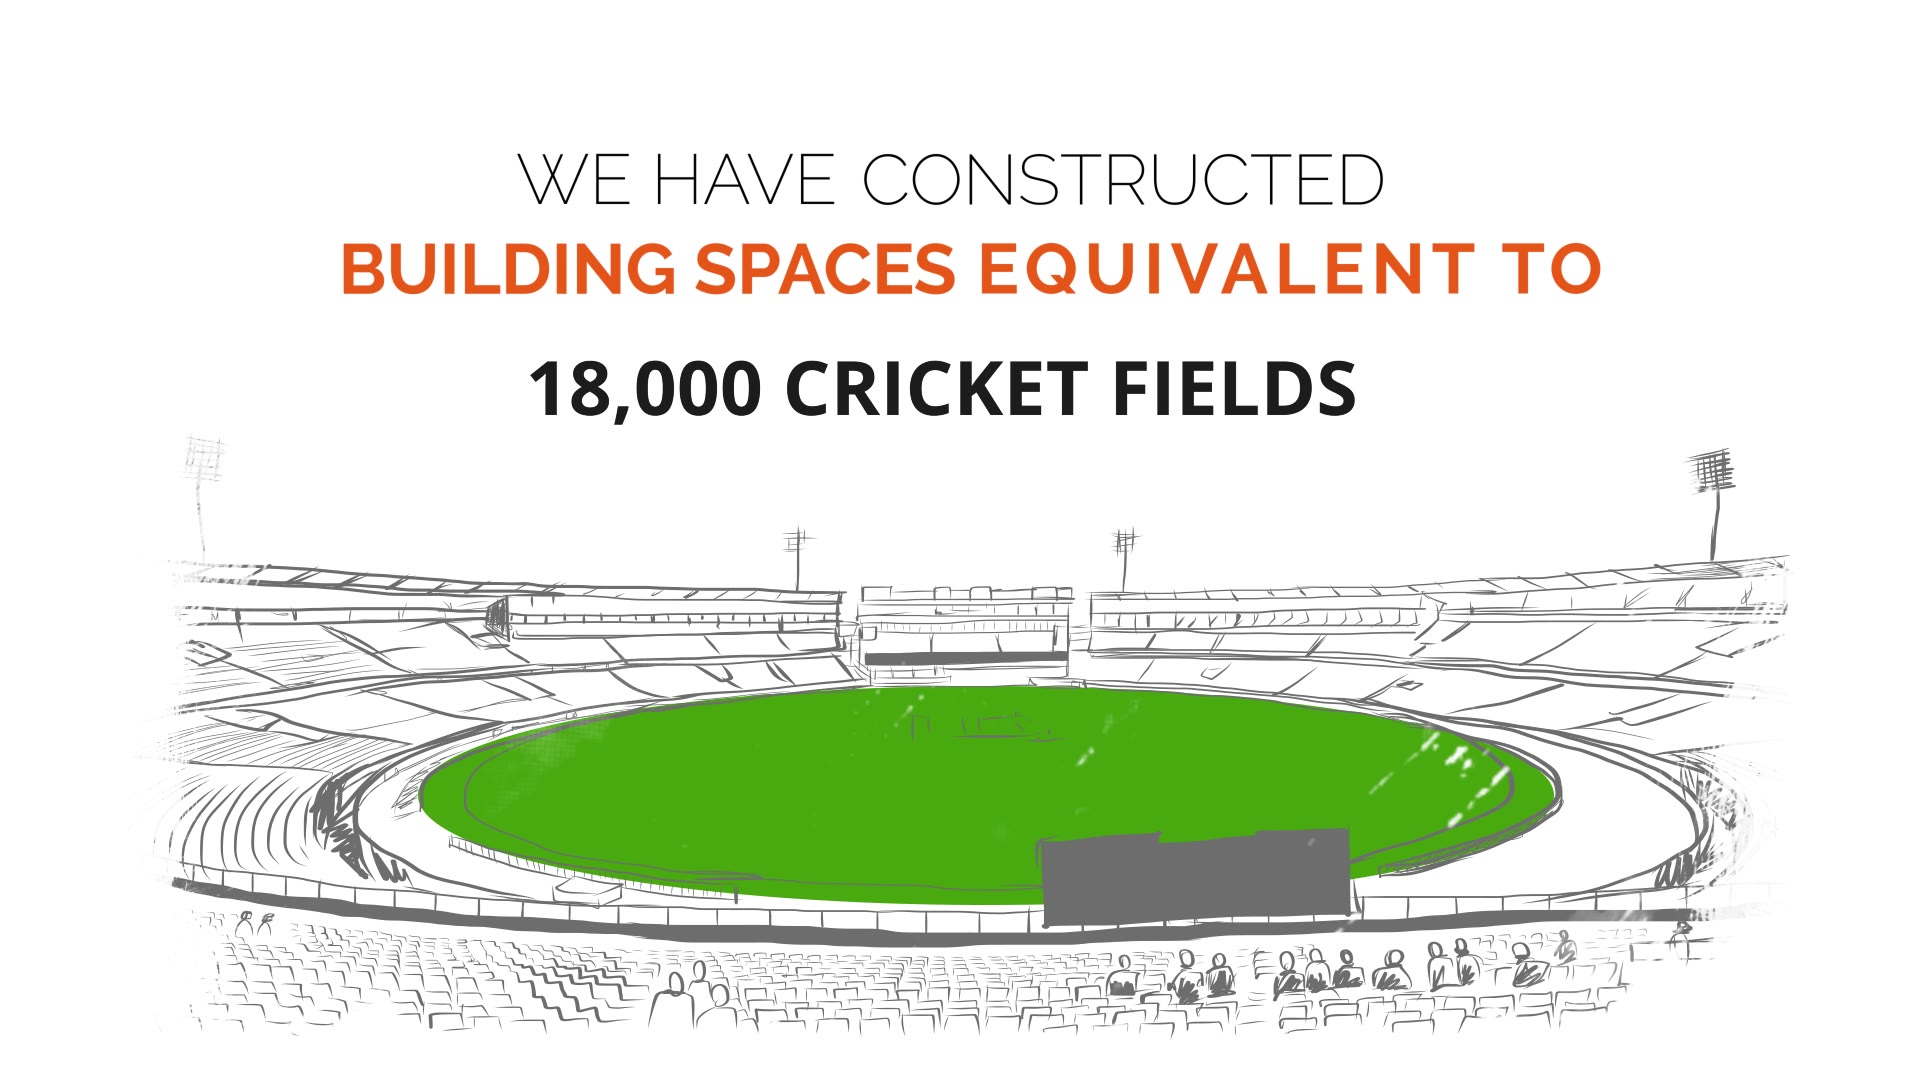 When we Promise, We Deliver.  Sun Builders Group has always kept its ethos intact. We take pride in constructing 10 Million Sq. Ft. spaces which is equivalent to 18,000 Cricket Fields and there's much more to come.   #SunBuilders #SunBuildersGroup #PremiumLiving #Ahmedabad #Gujarat #RealEstate #Residential #Commercial #WePromiseWeDeliver #Construction